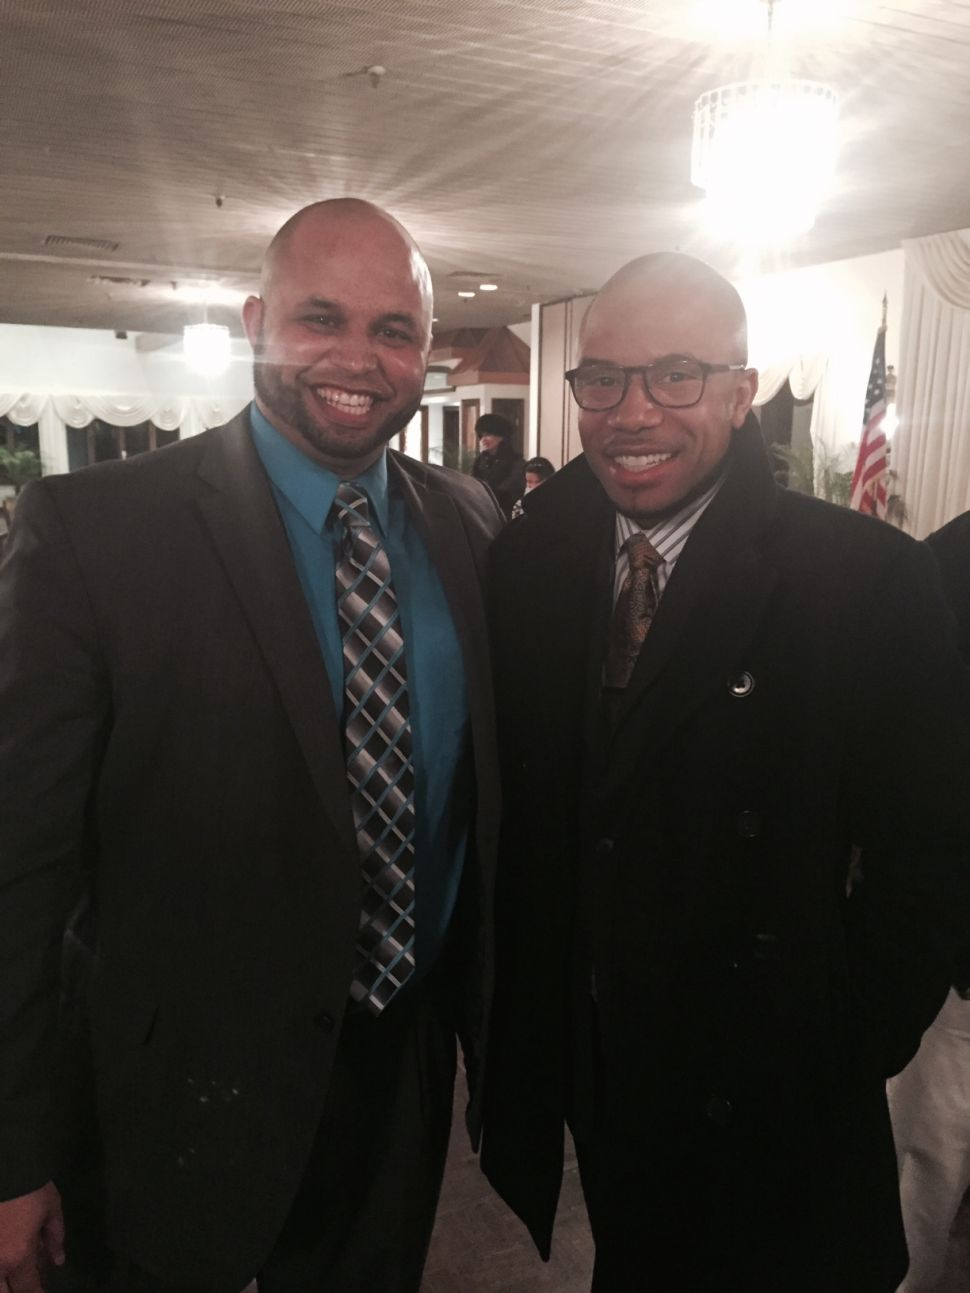 Jefferson tapped by Gloucester Dems for freeholders seat